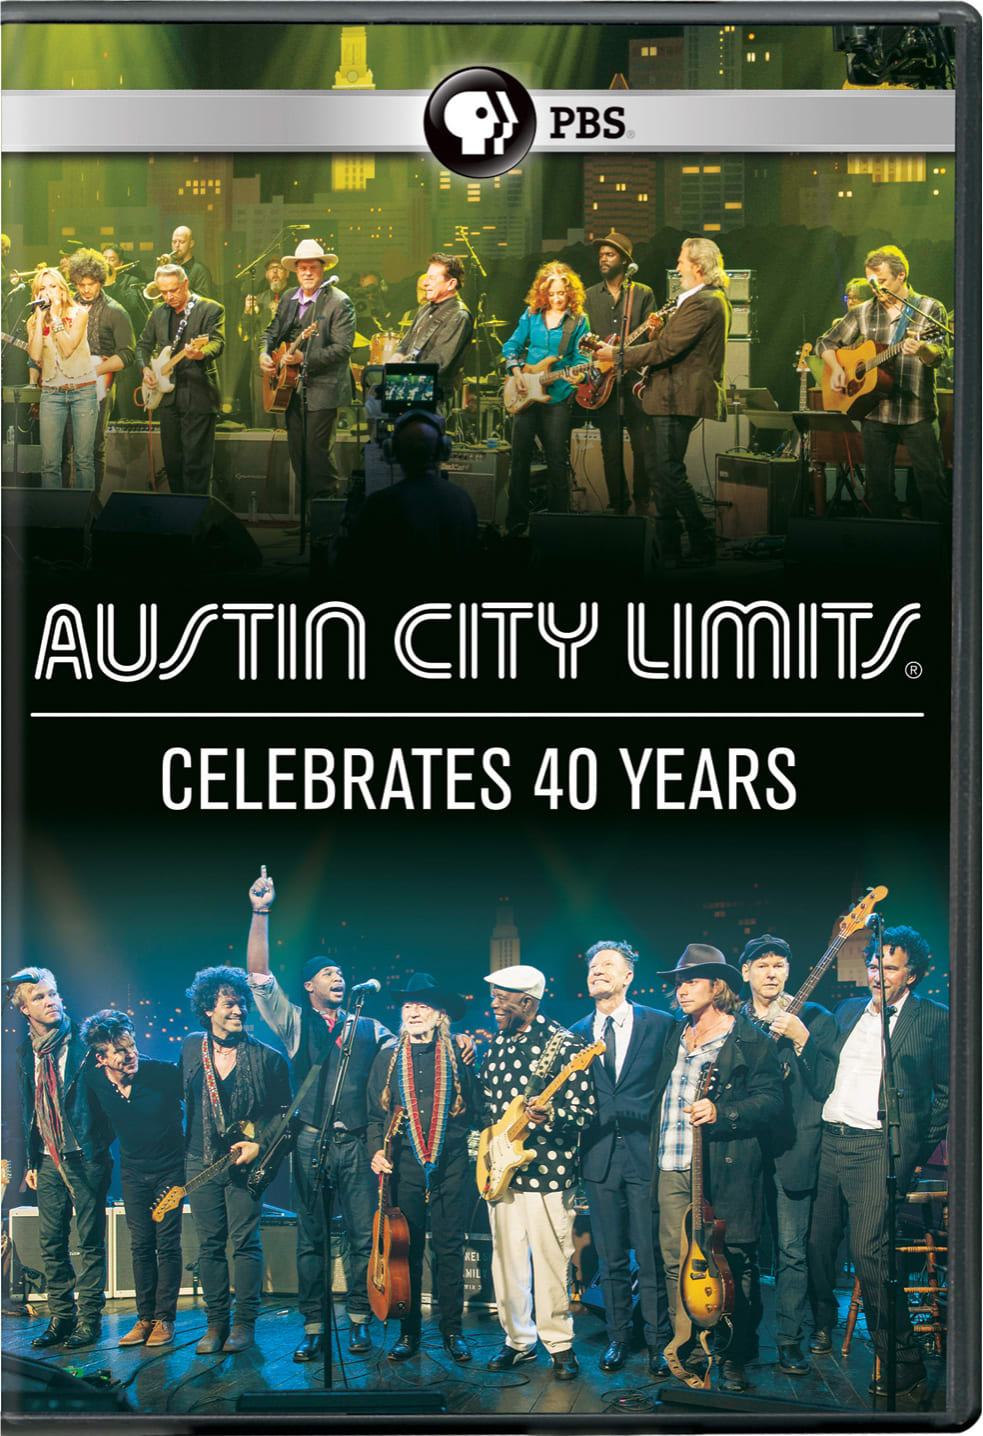 Austin City Limits: Celebrates 40 Years (2014) [DVD]